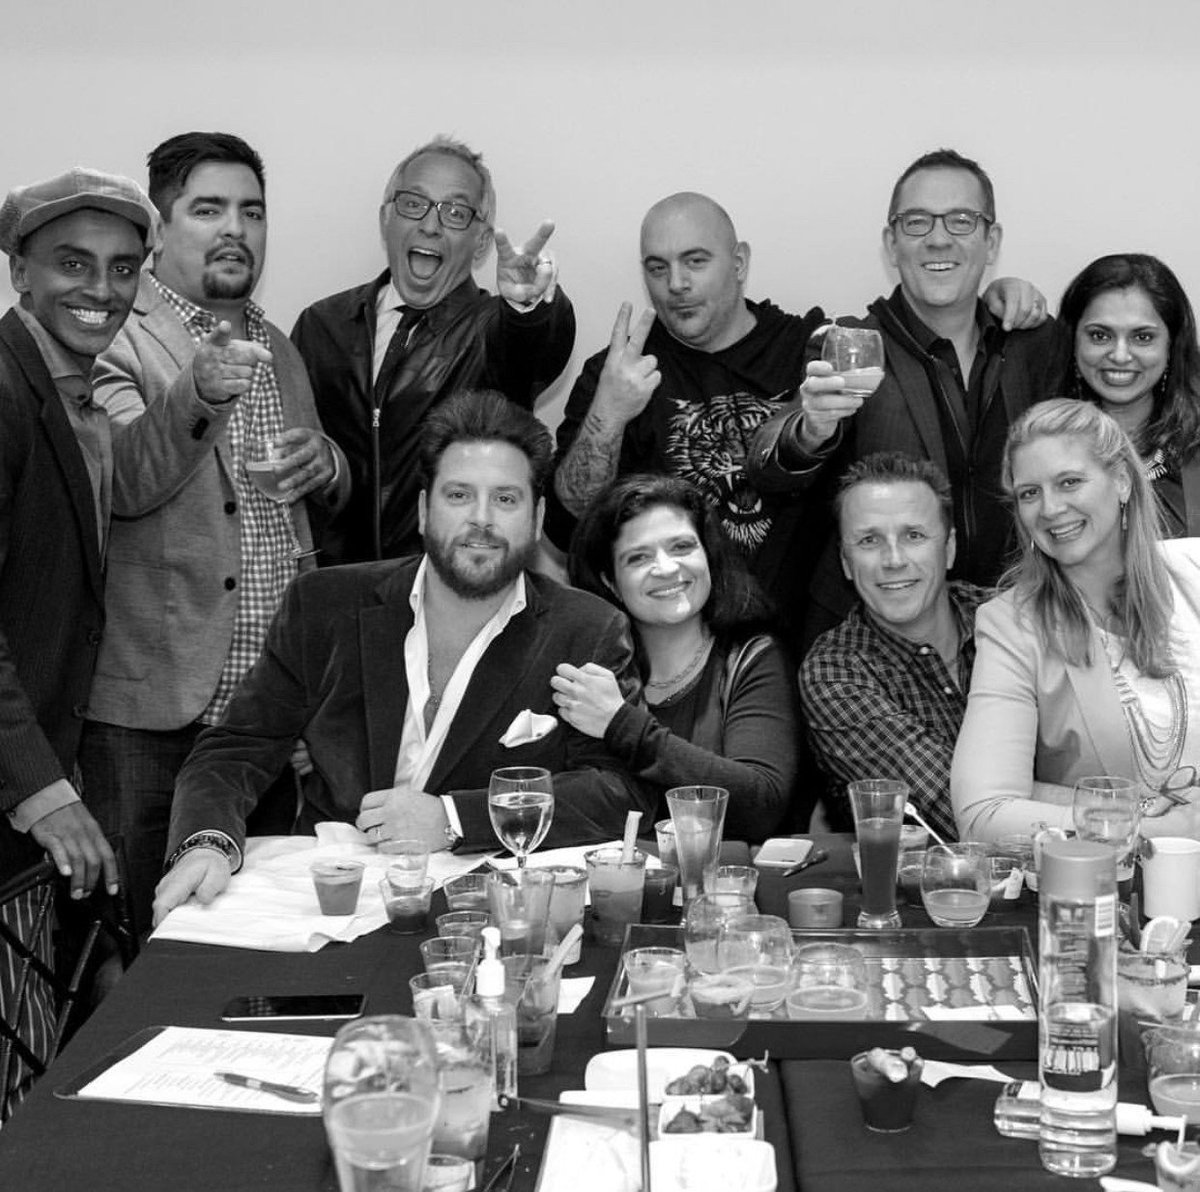 How many chefs can you fit into one photo? #Chopped #ThrowbackThursday <br>http://pic.twitter.com/izw5KLAhnu